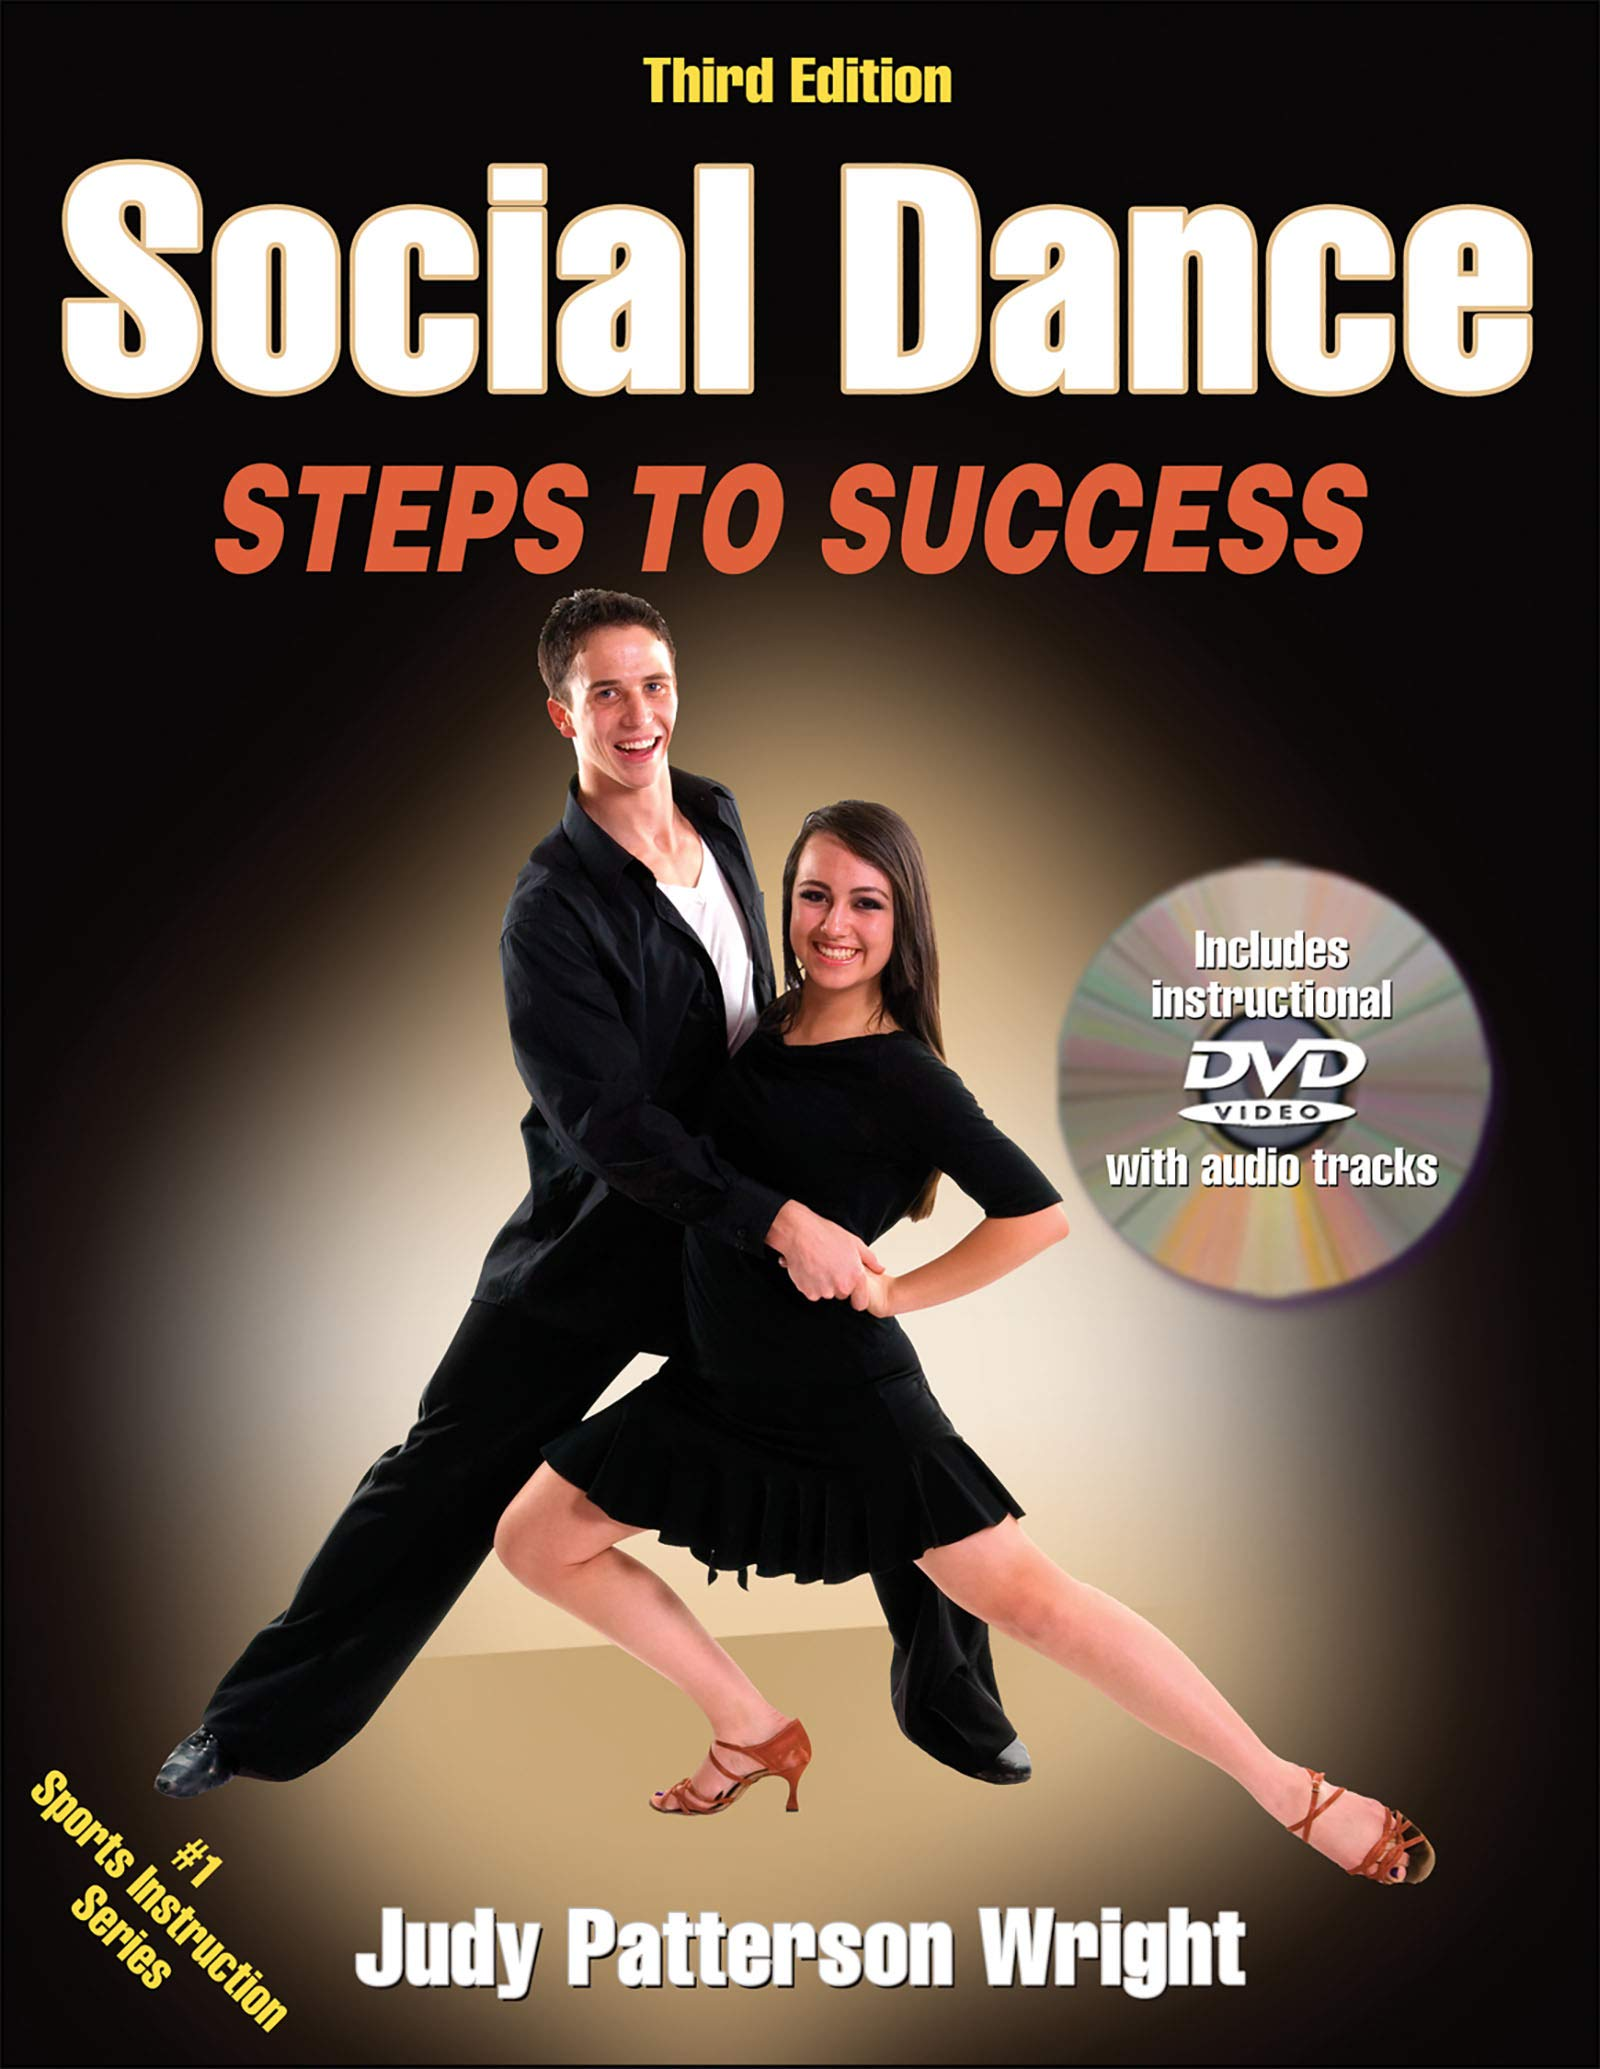 Social Dance Steps To Success Sts Activity Cool Moves Step By Salsa Diagram Judy Patterson Wright 9780736095075 Books